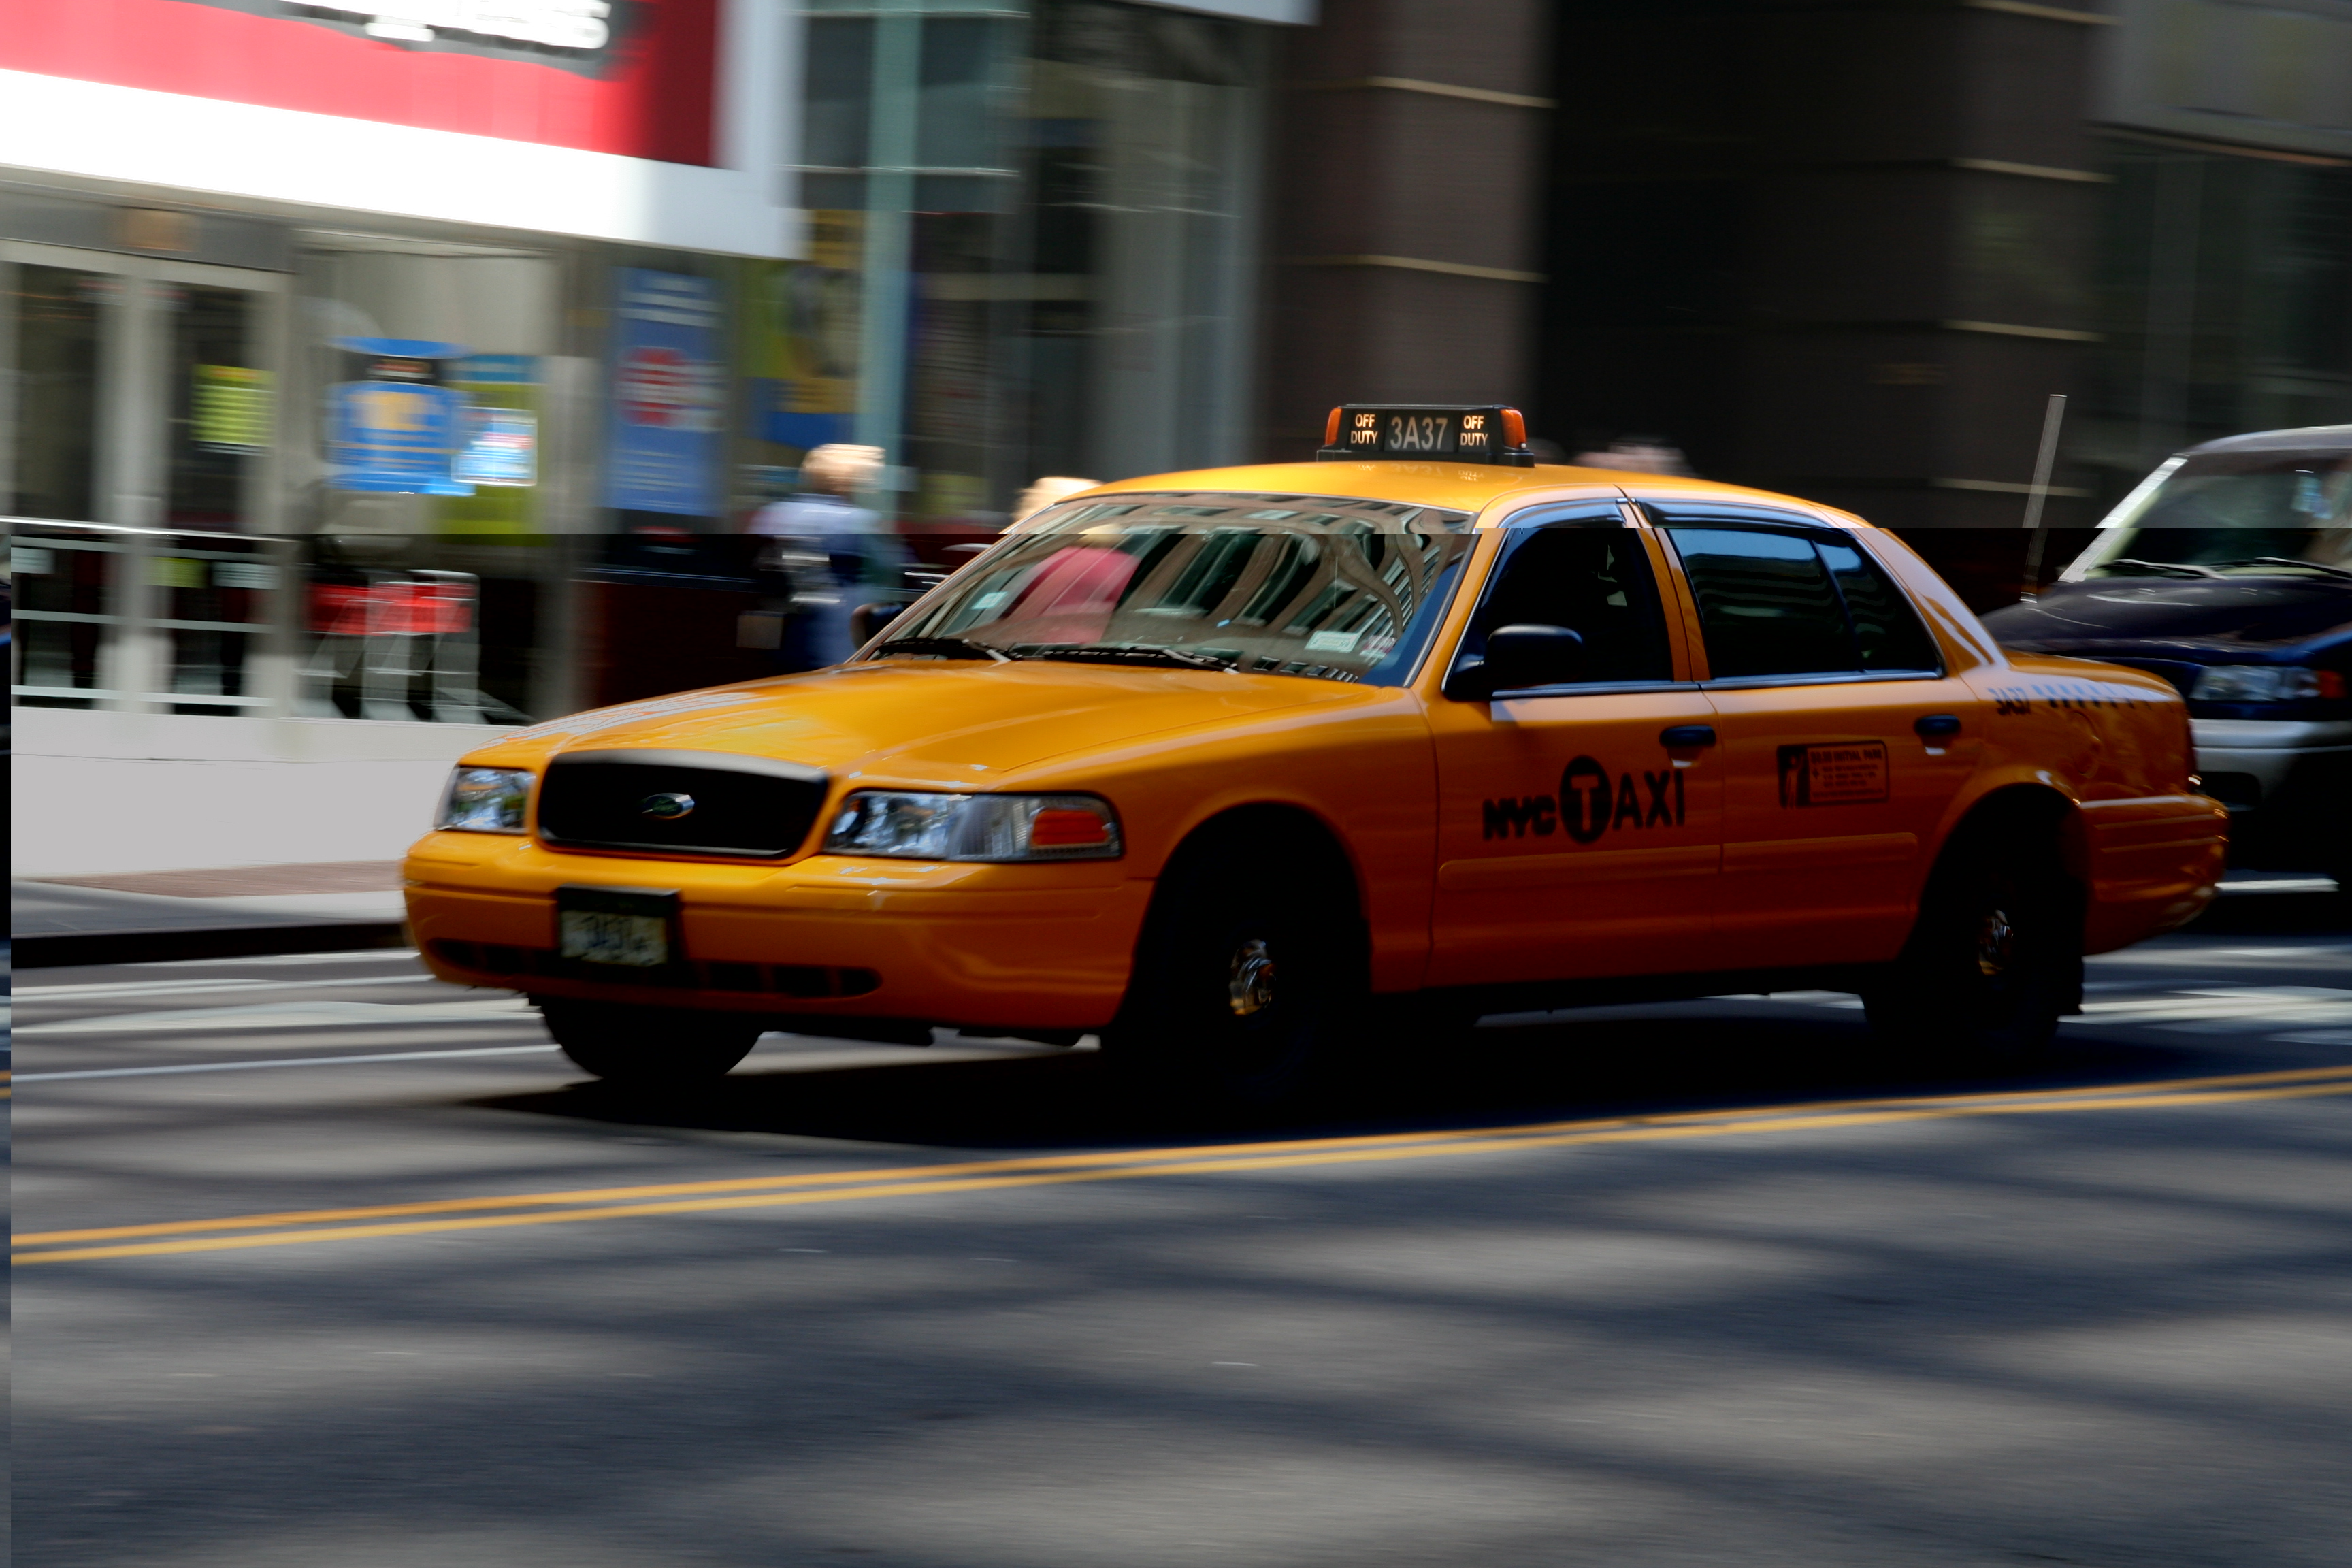 Don't Take Cabs. You're Better Than That! - The New York Budget